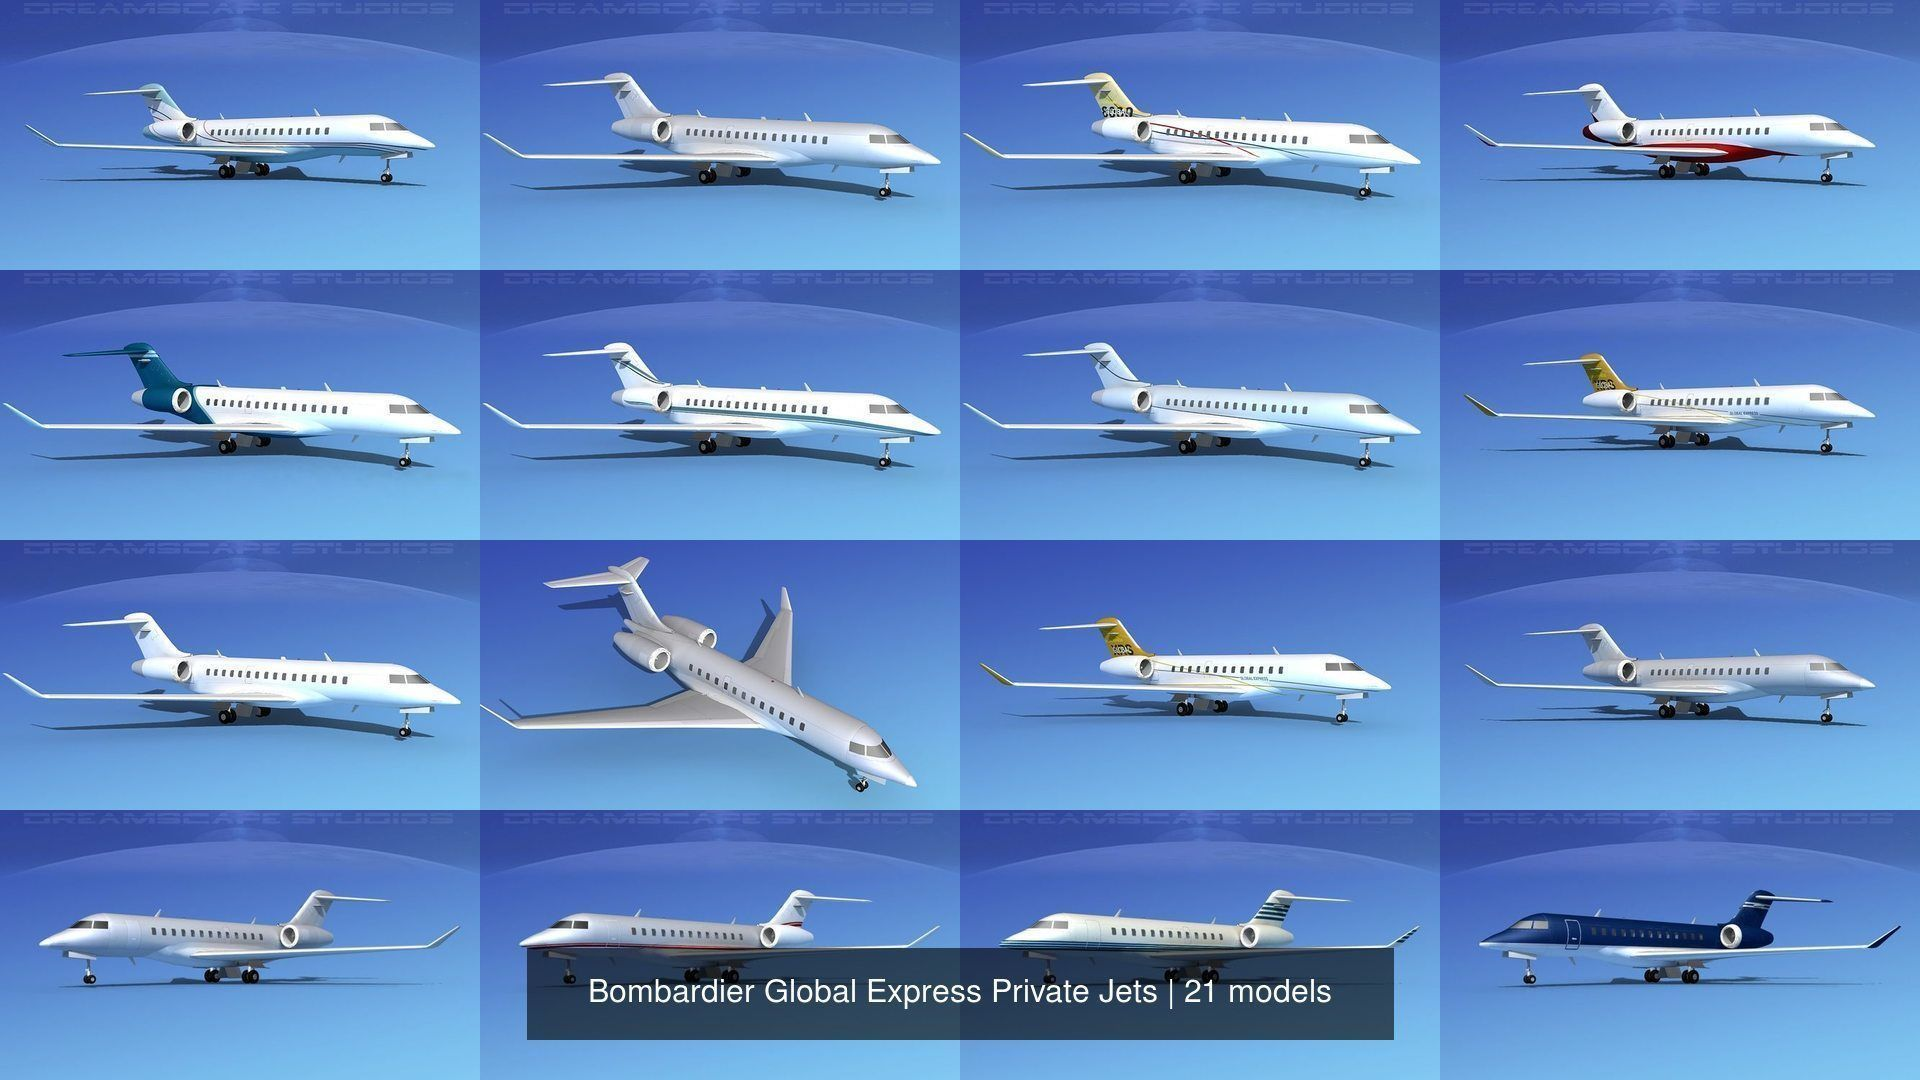 21 Bombardier Global Express Private Jets